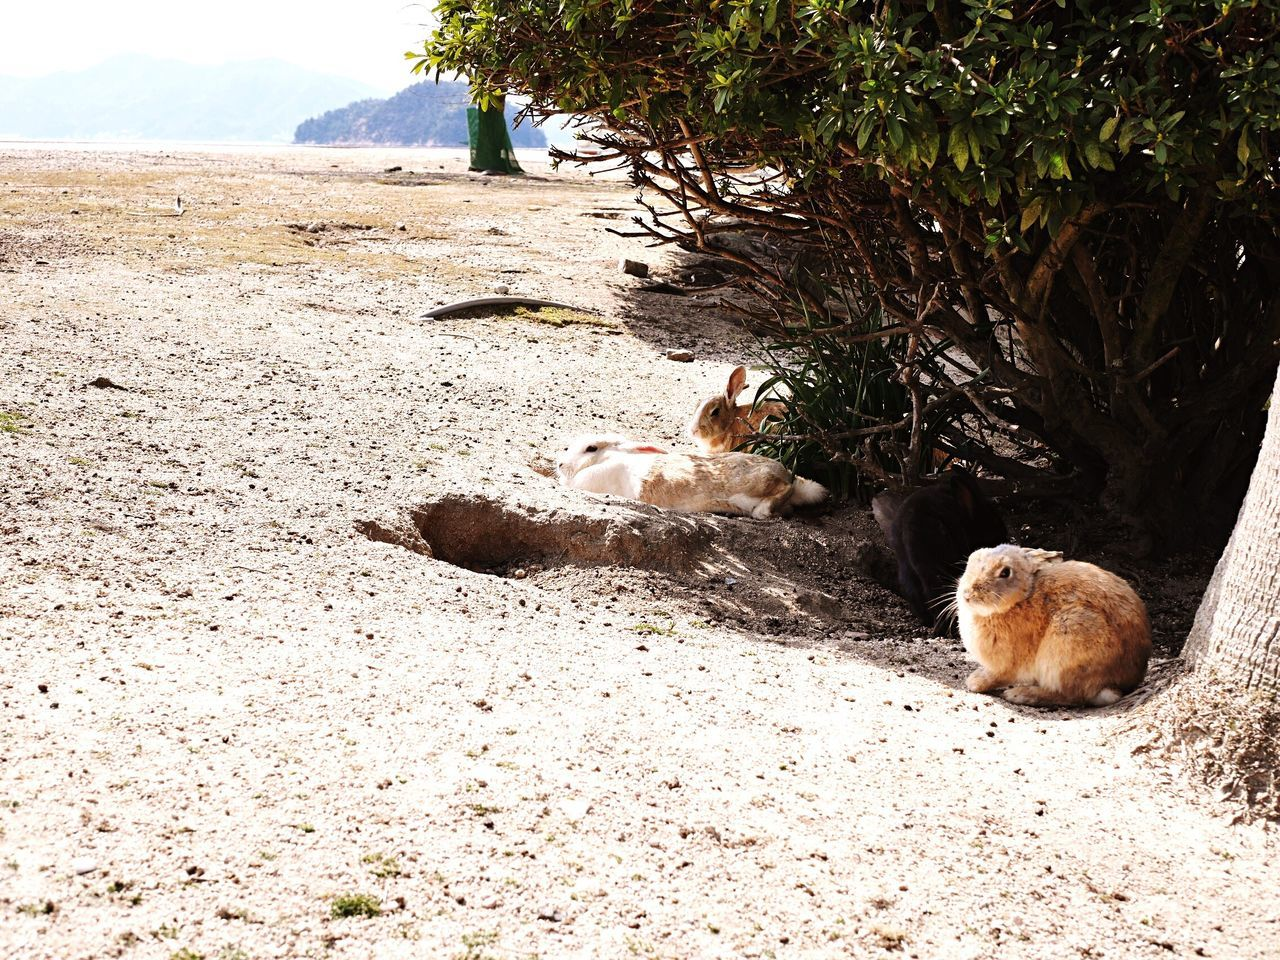 Outdoors Pretty Cute Japanese  Beautiful Nature_collection Nature Photography Nature Animal Themes Animals In The Wild Animals Animal Animal Wildlife Animal Head  Animal Photography Rabbit ❤️ Rabbit Rabbits Island Beautiful Nature Sea And Sky Sea Sand Beach Photography Tree